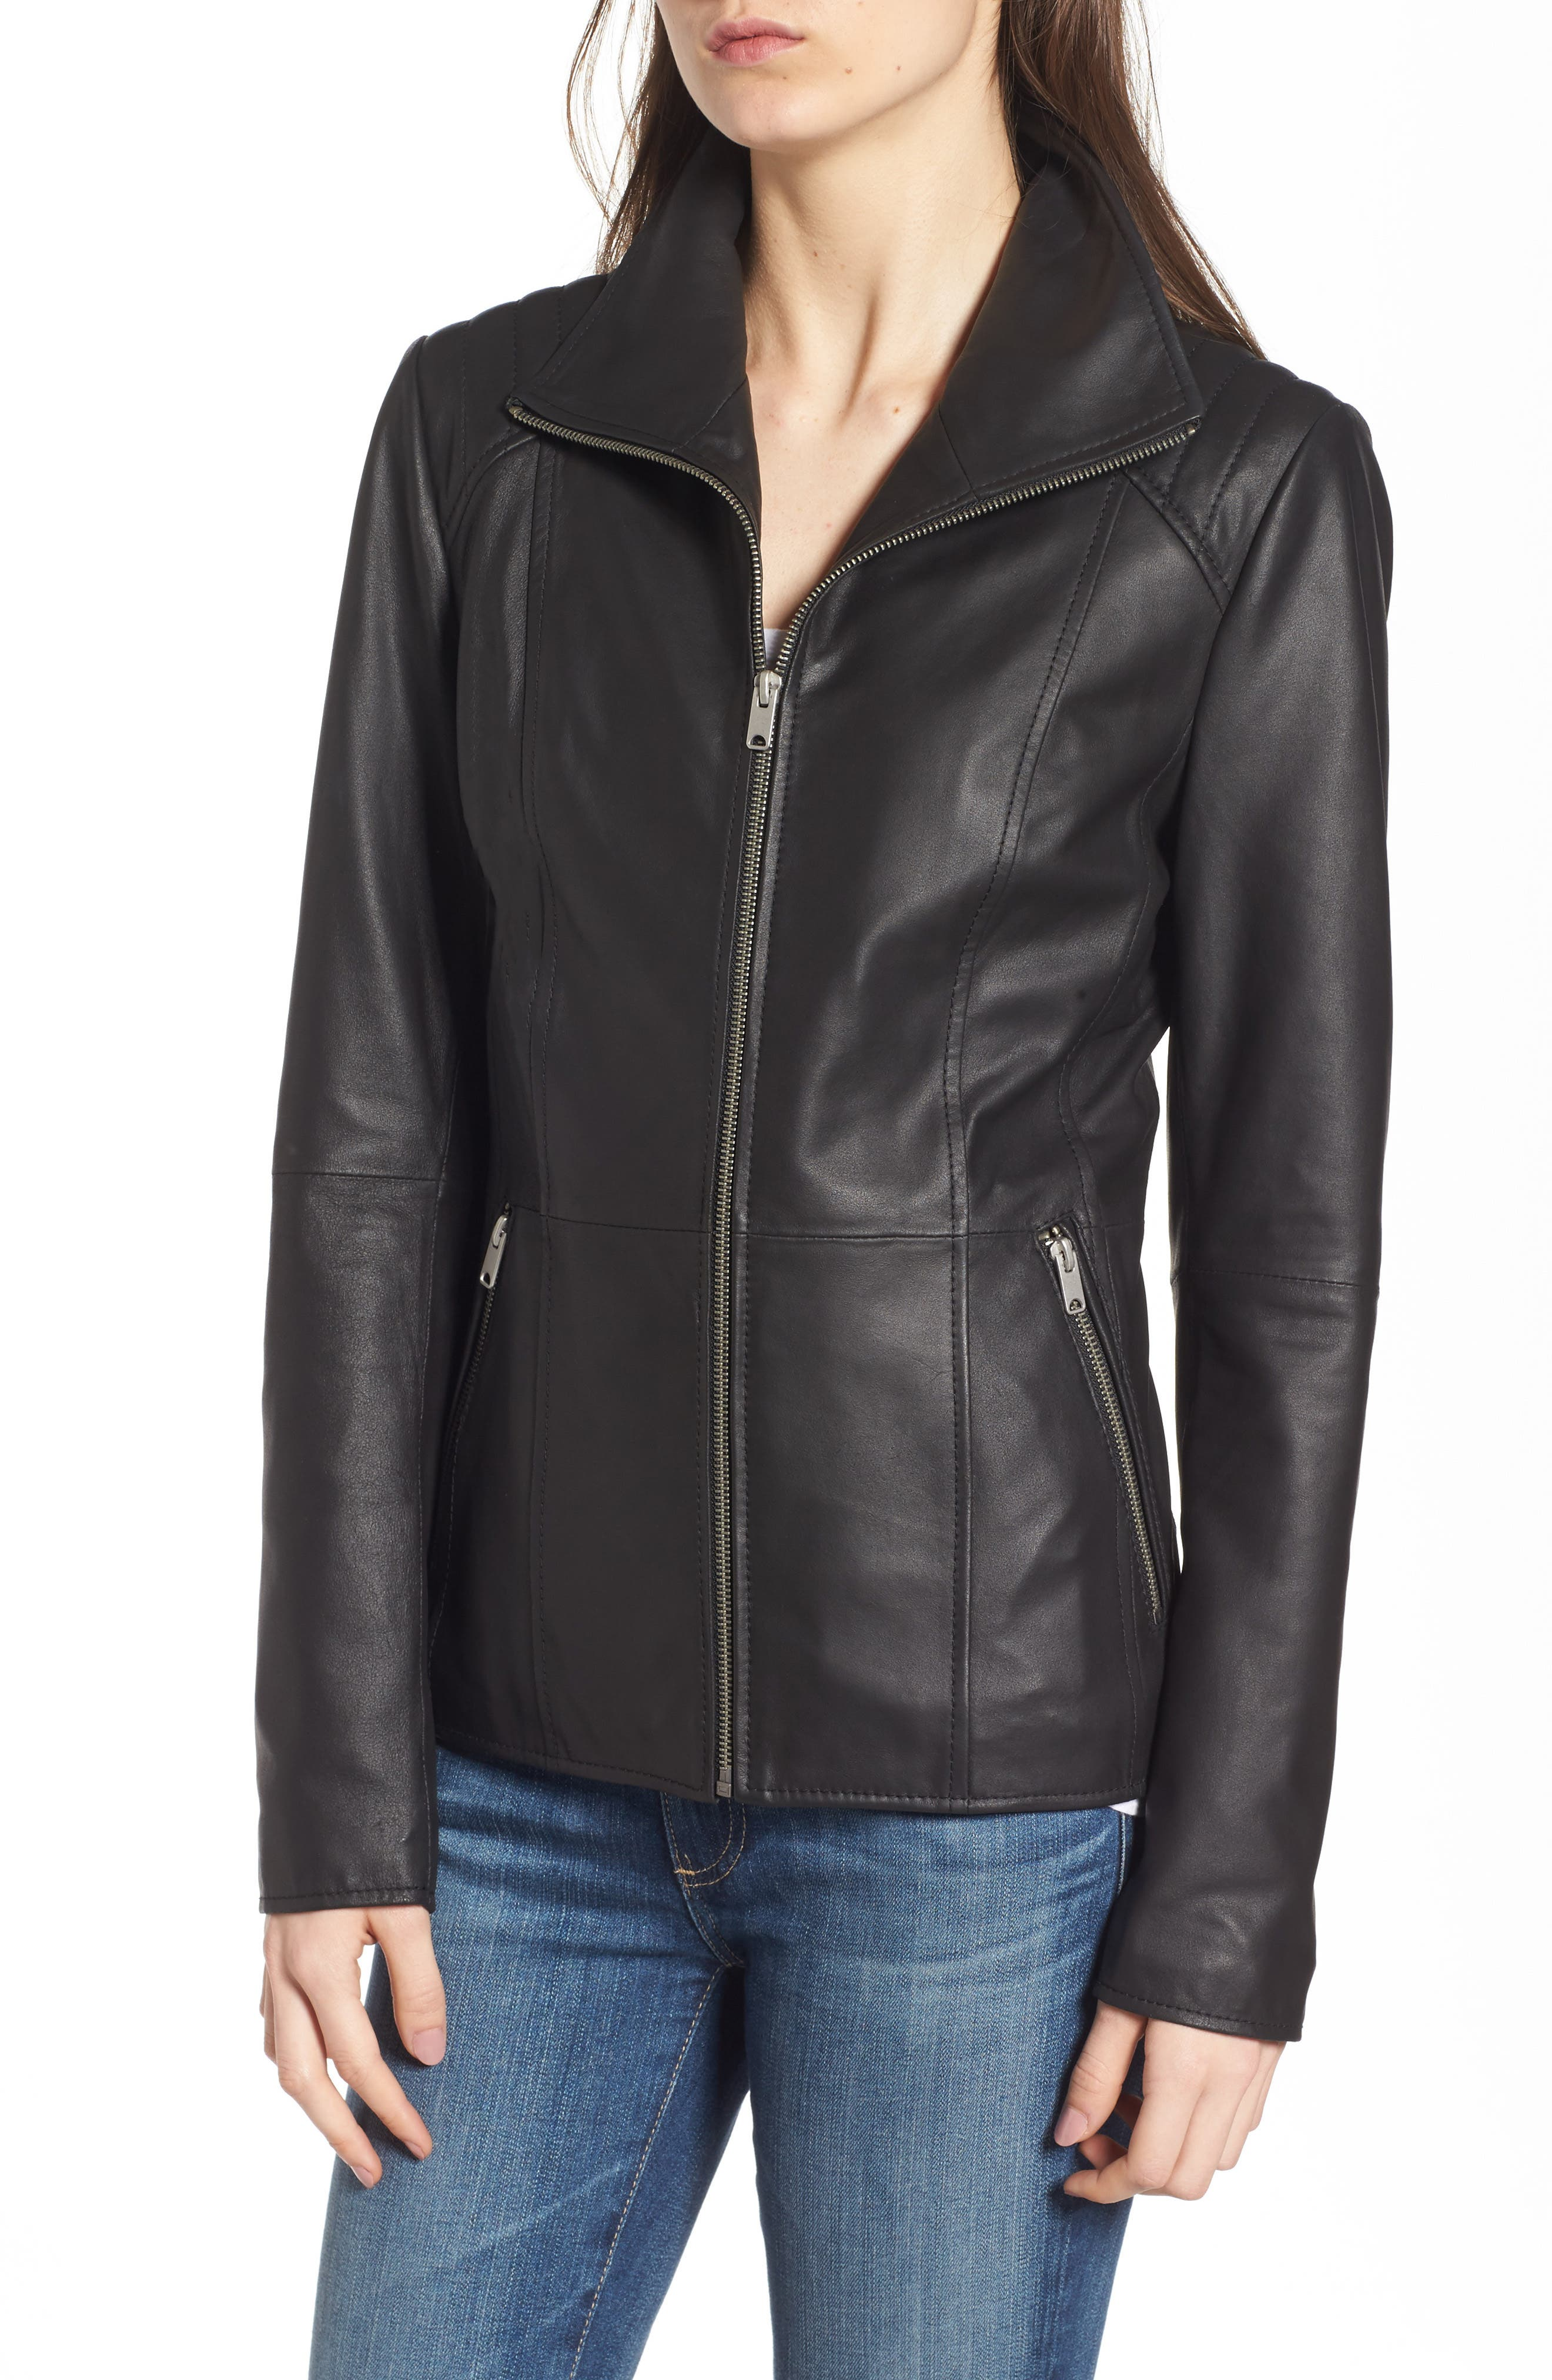 Fabian Feather Leather Jacket,                             Alternate thumbnail 4, color,